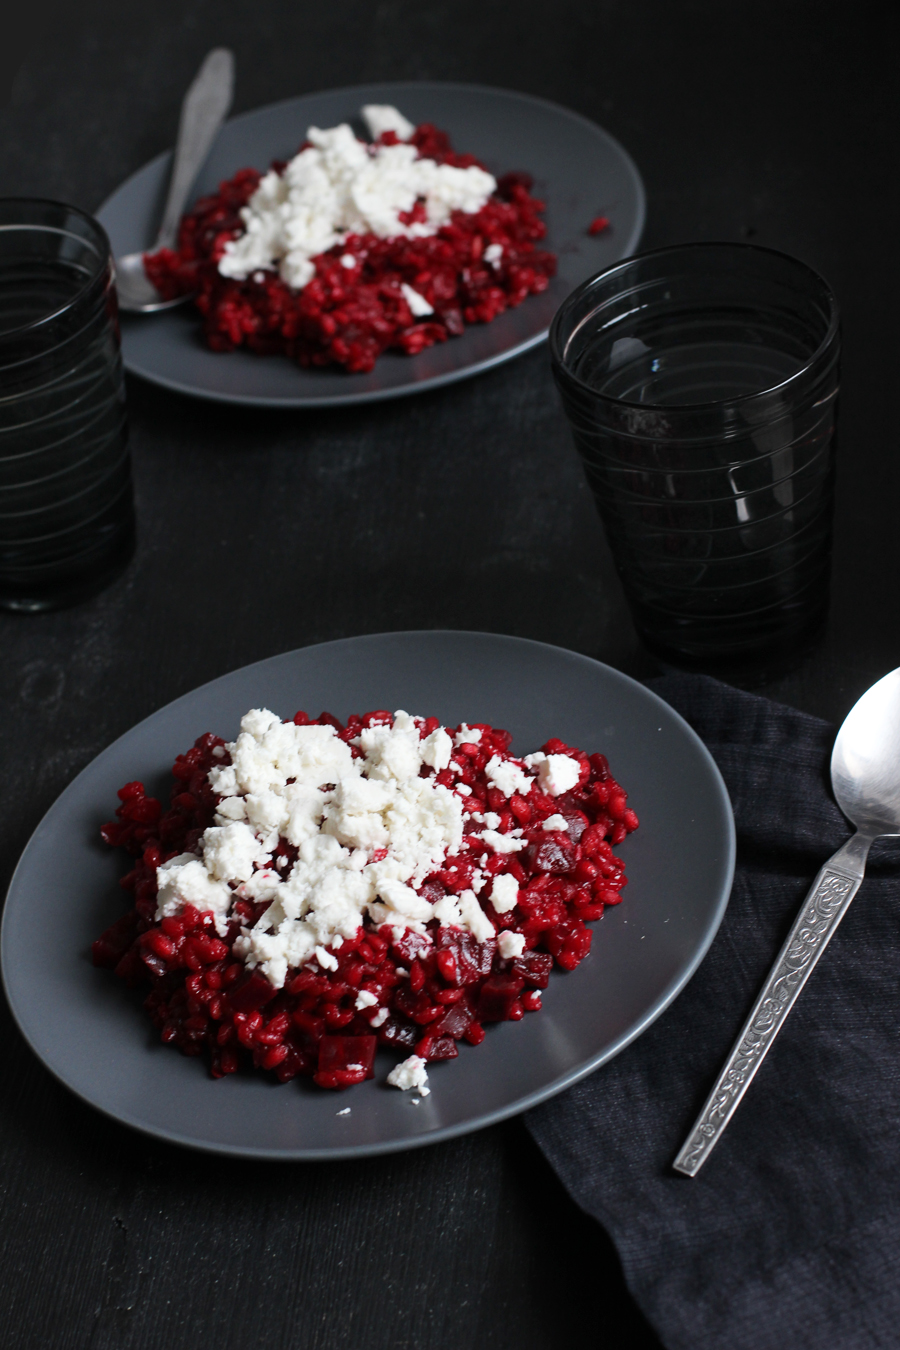 Healthy beetroot barley risotto recipe with feta cheese | LOOK WHAT I MADE ...